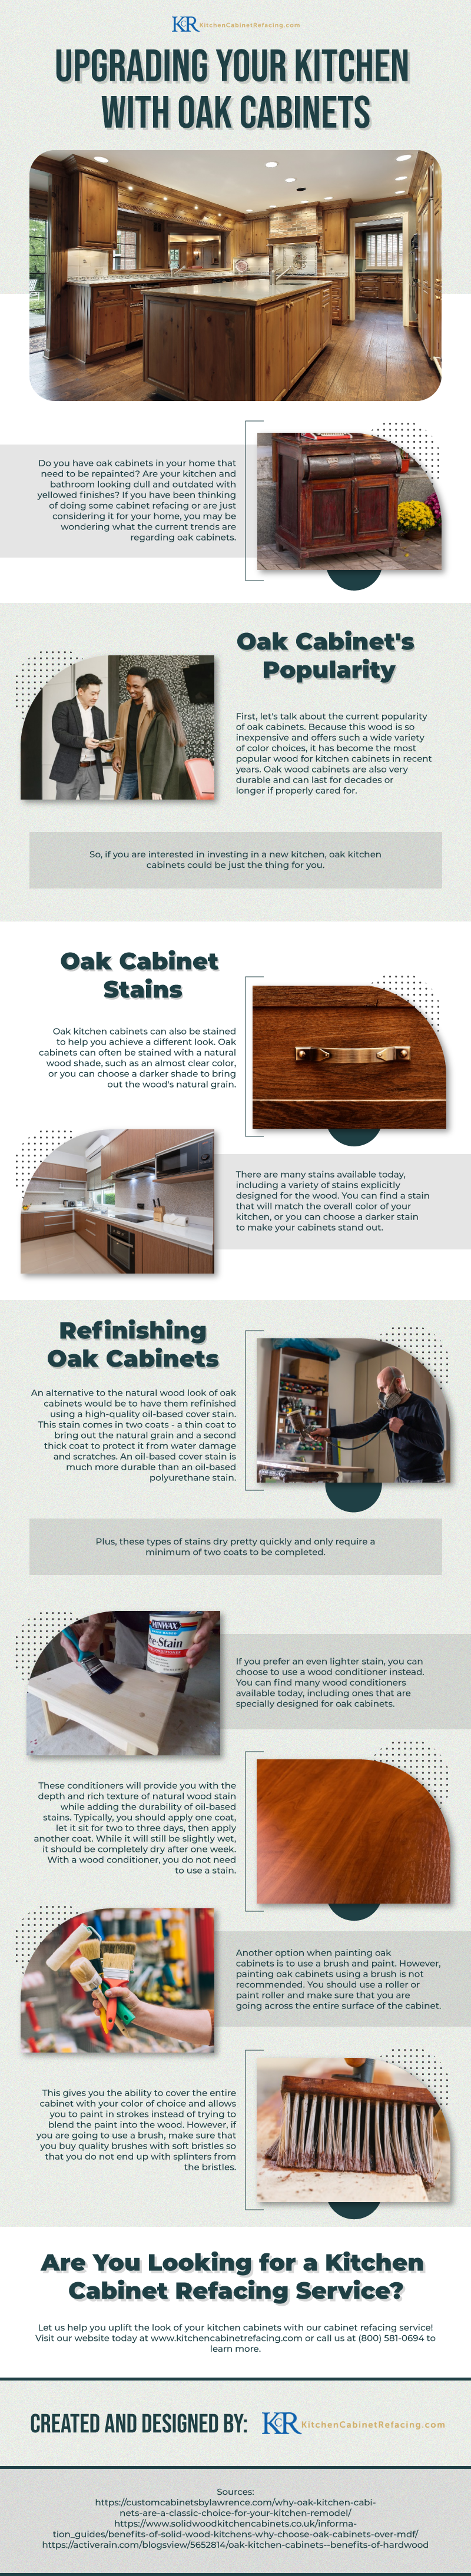 Upgrading Your Kitchen with Oak Cabinets